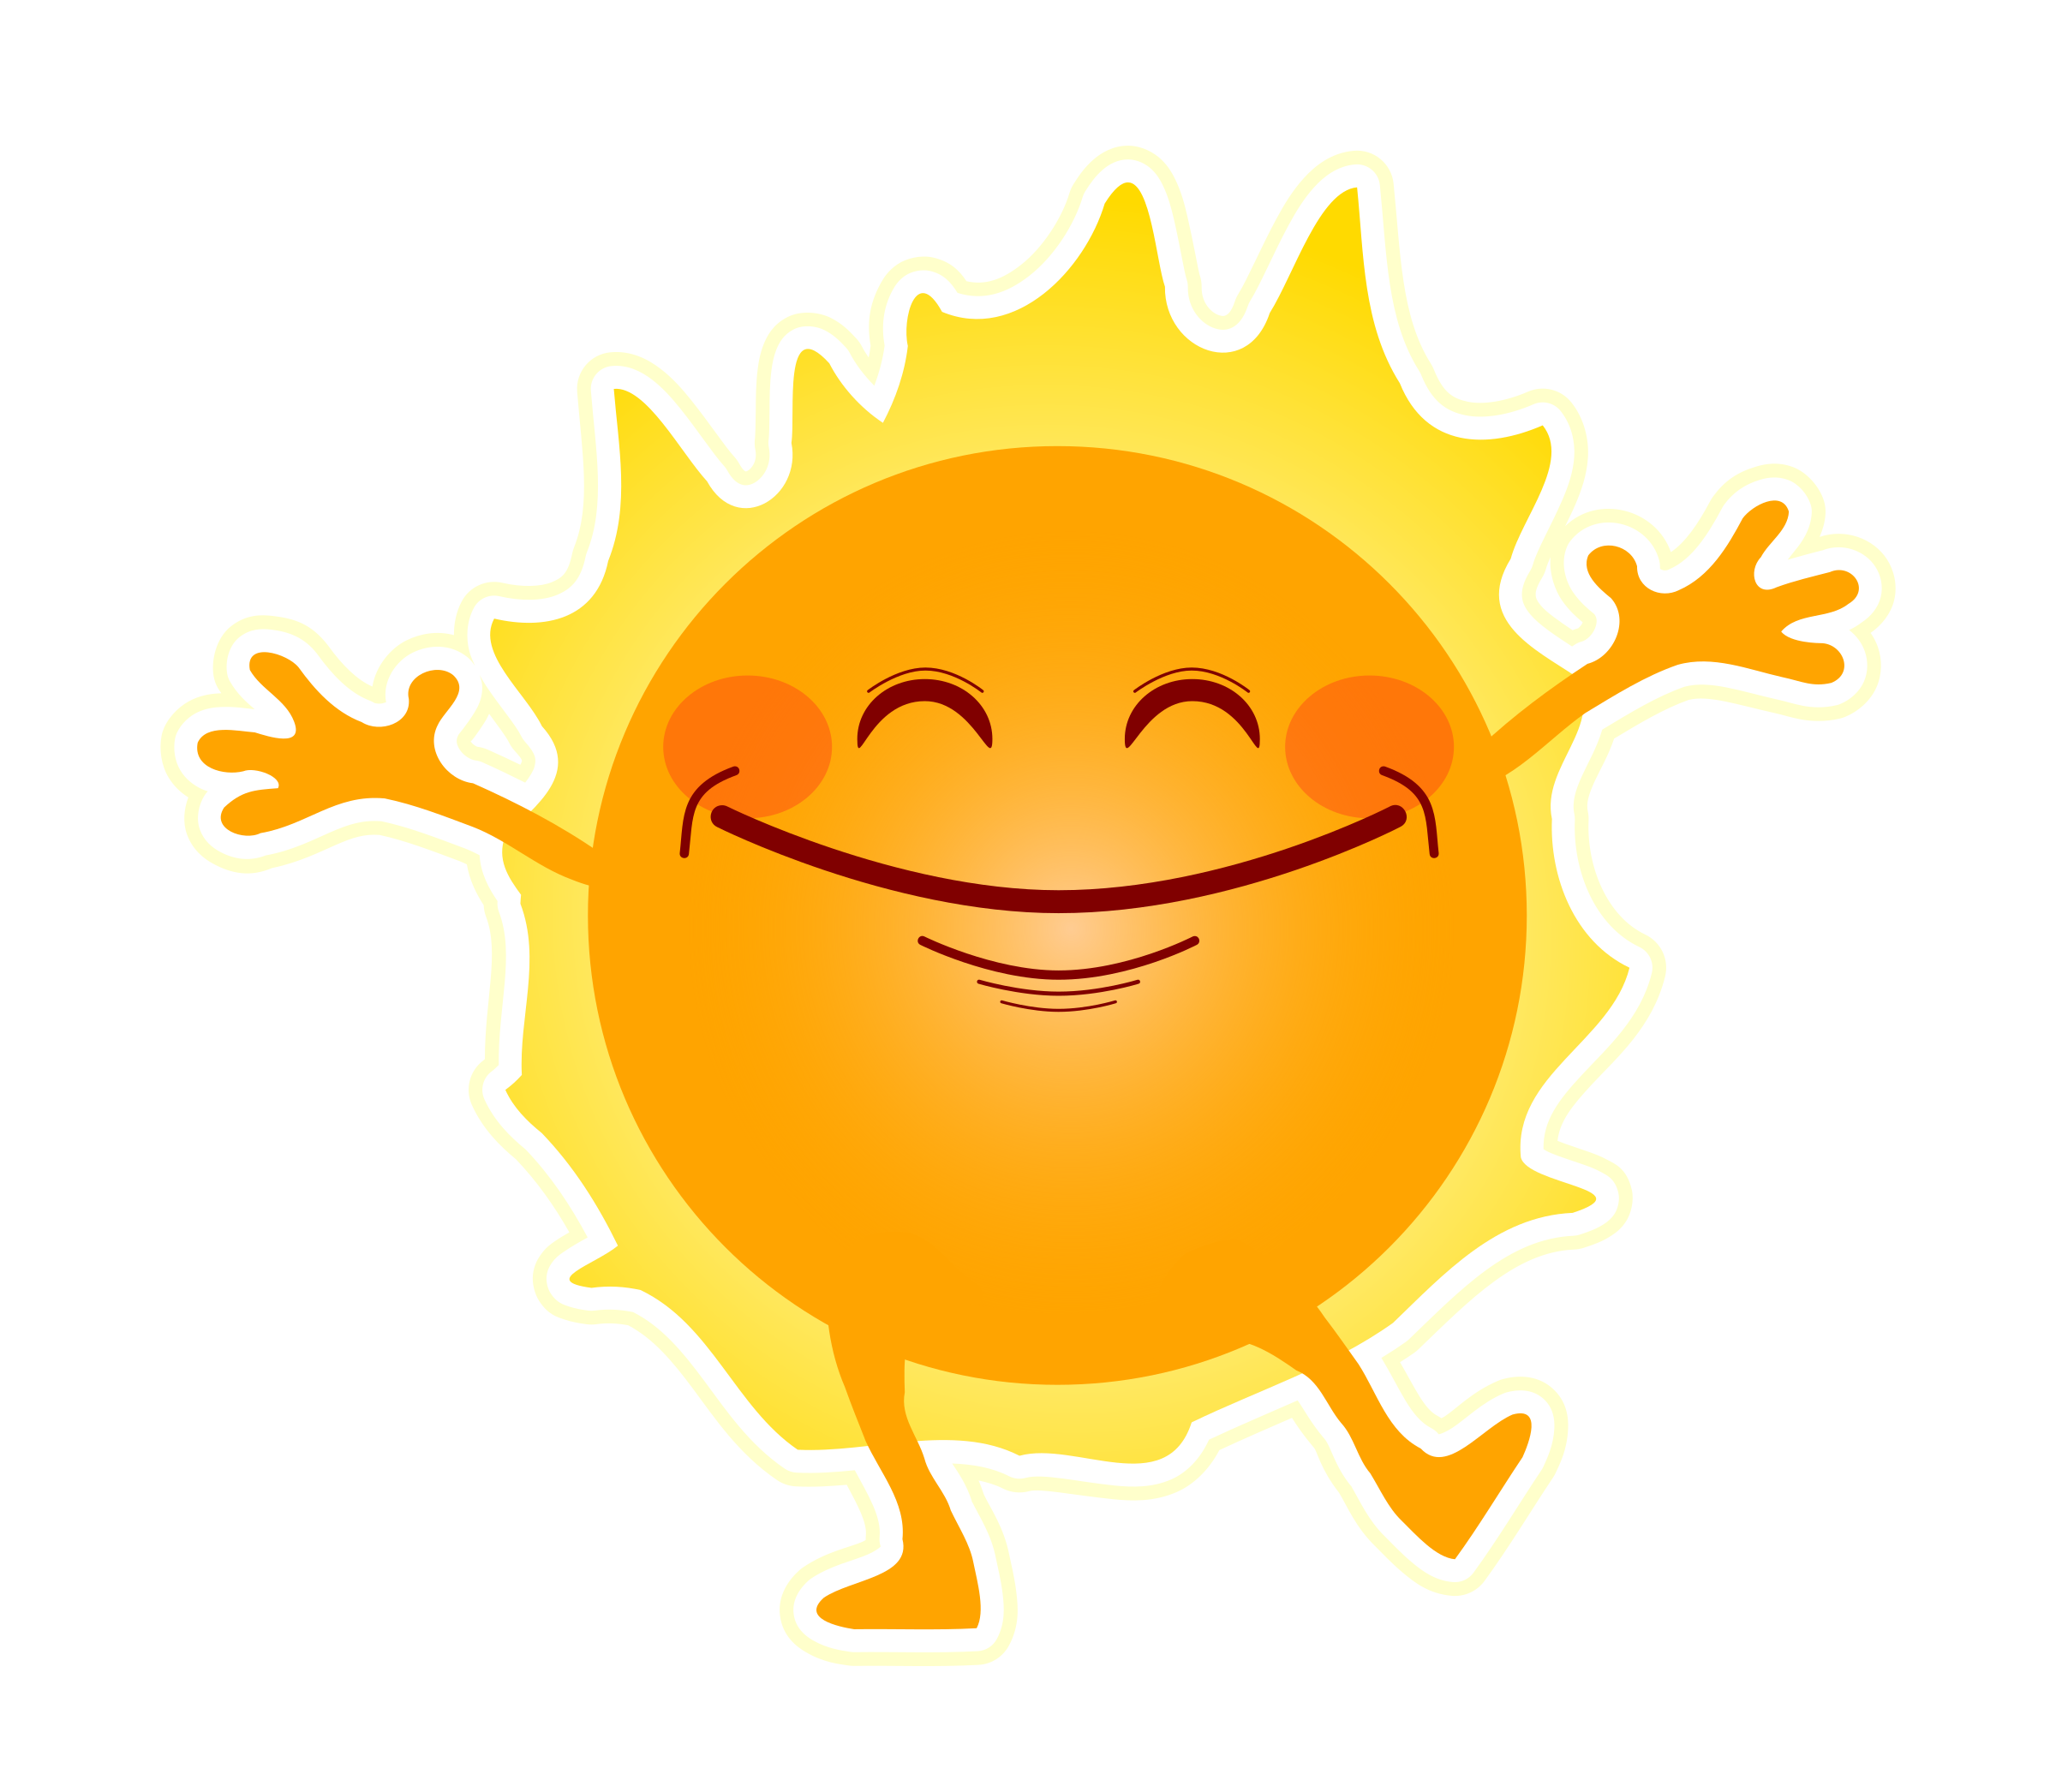 happy sunshine vector clipart image free stock photo public rh goodfreephotos com clipart sunshine free clipart sunshine and flowers